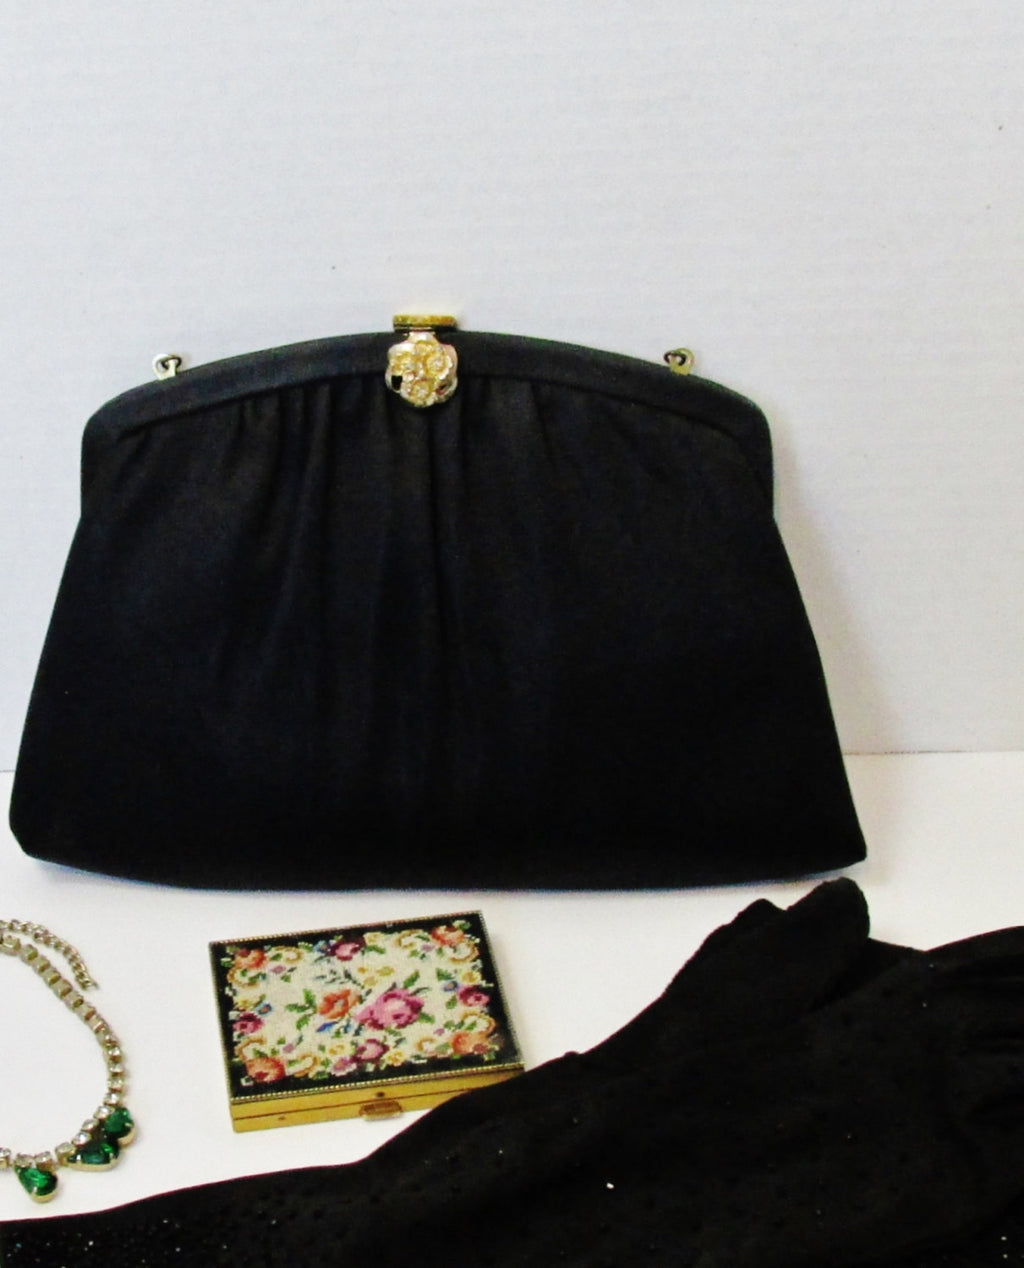 60s Harry Levine , Small Black Fabric Purse with Gold Floral Rhinestone Clasp - Ysabel Vintage Online